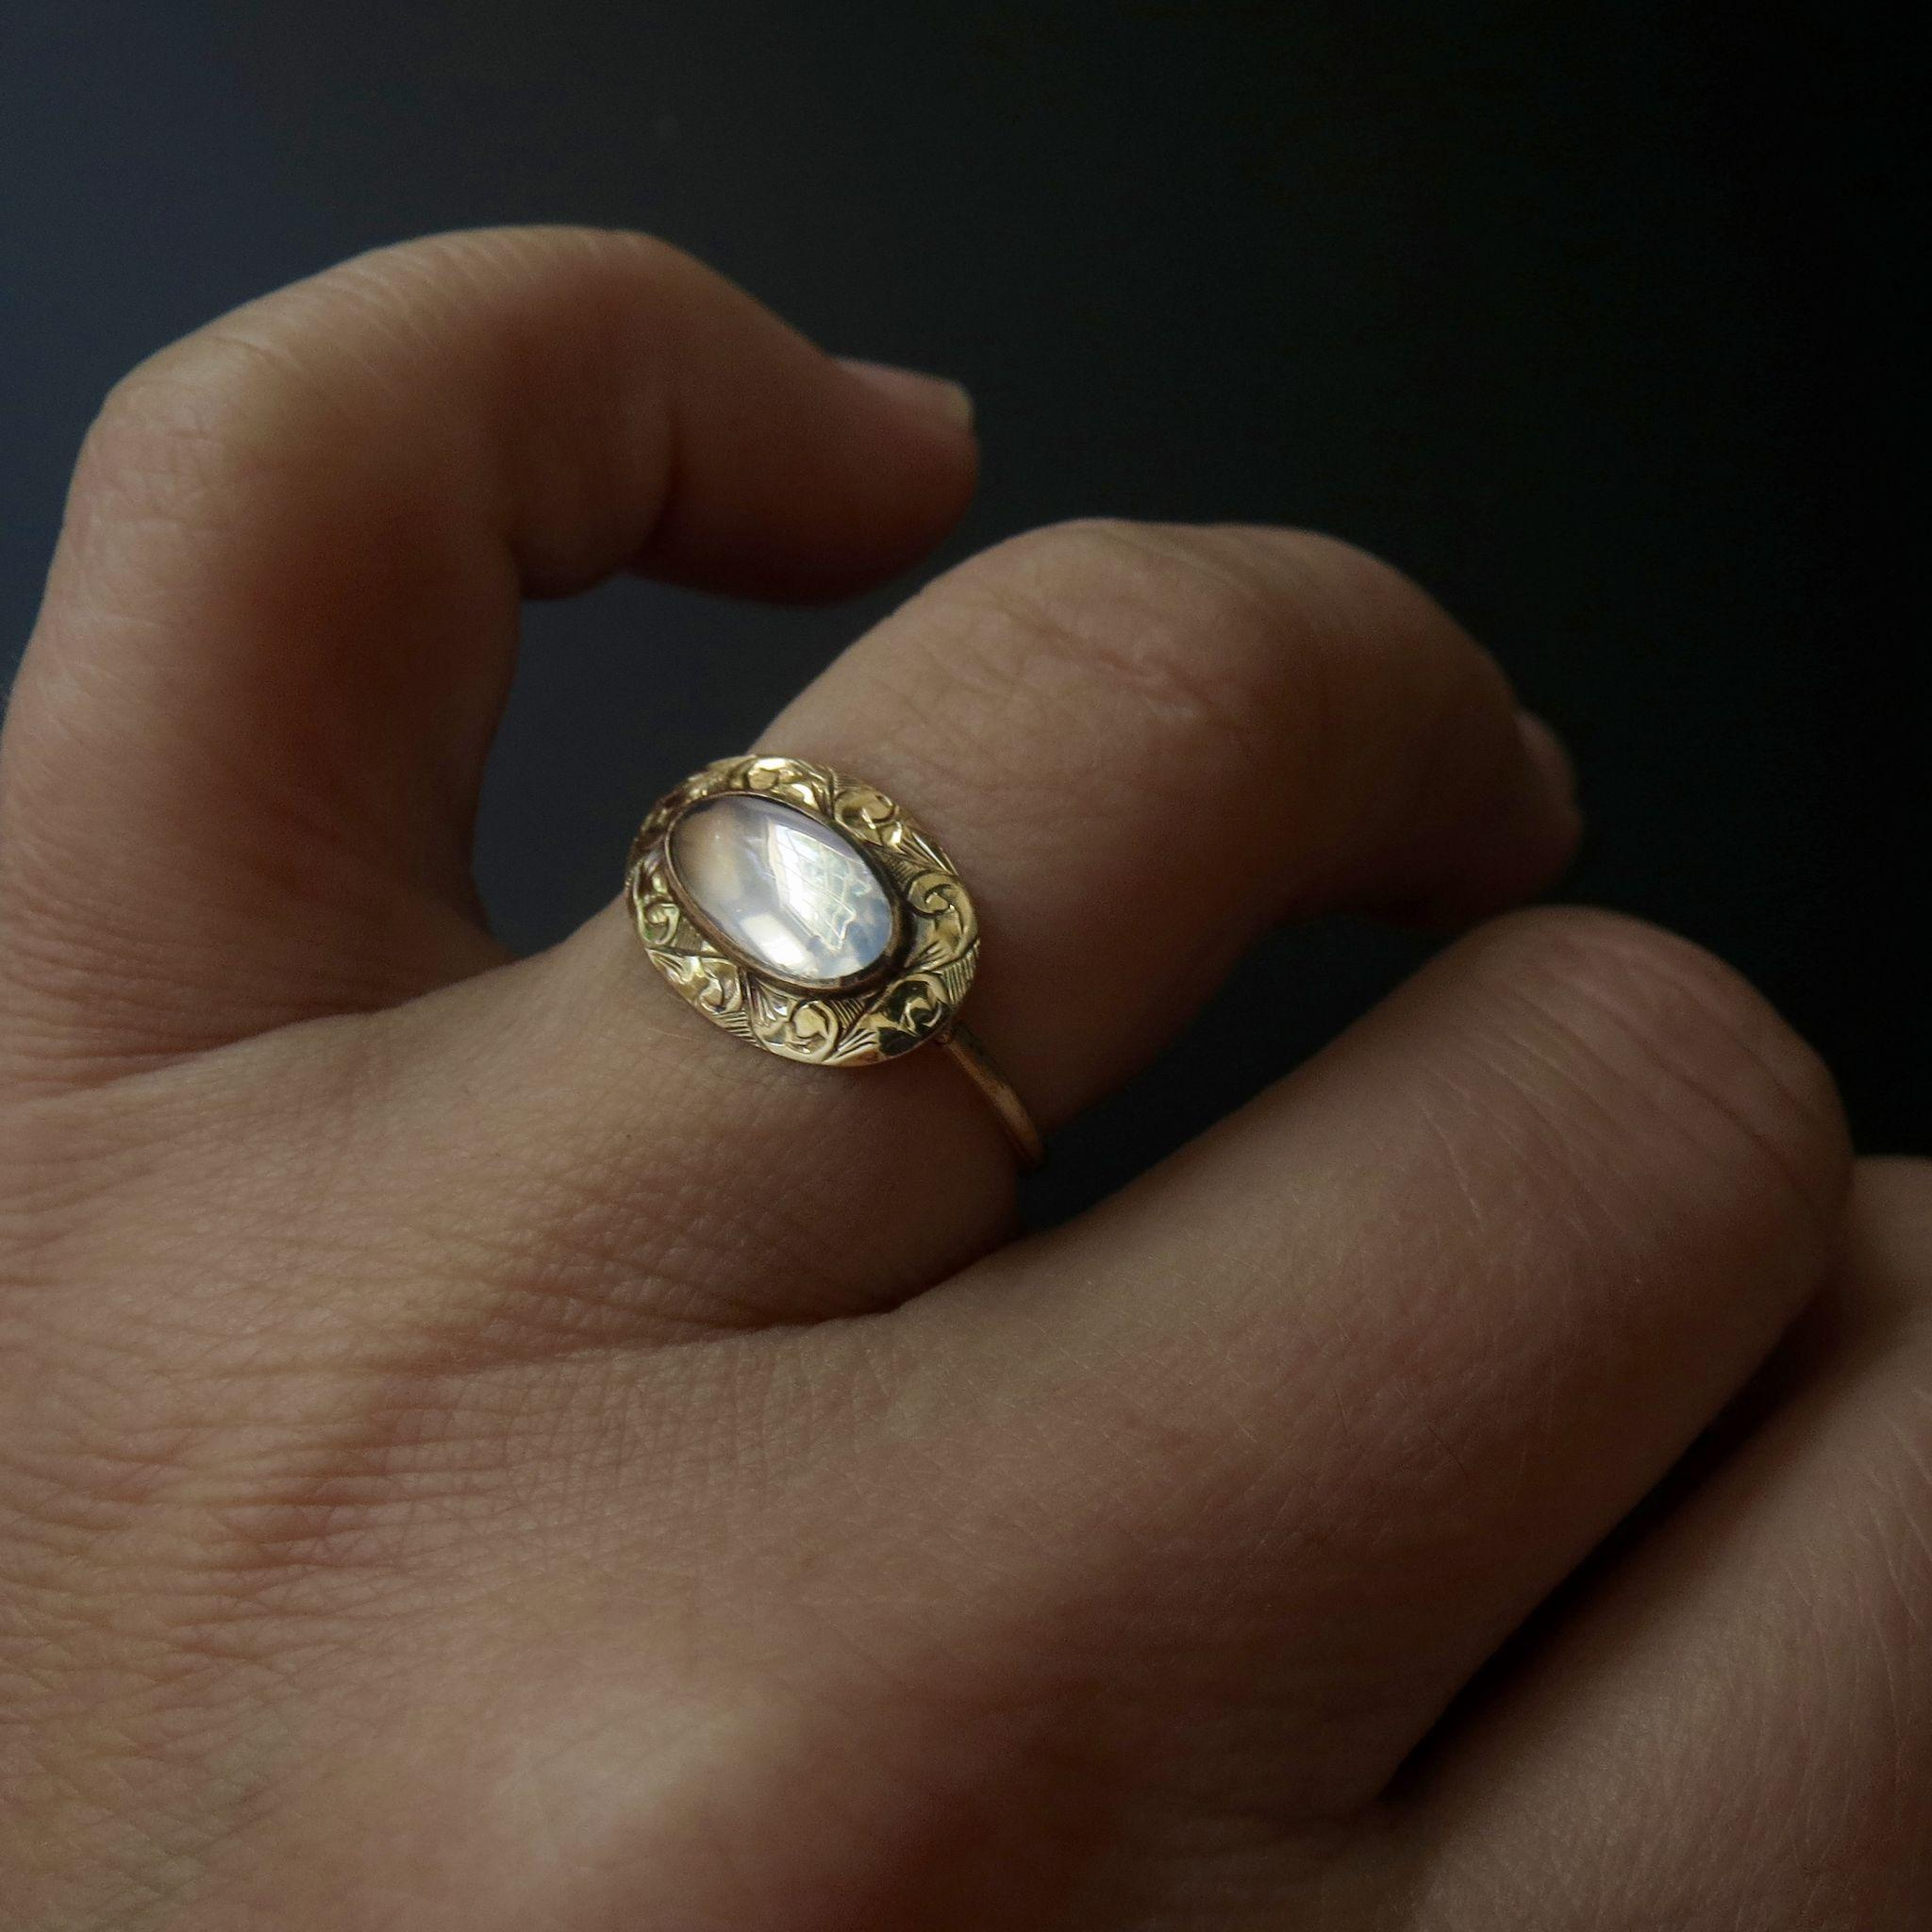 Edwardian 14k Gold Fine Moonstone Ring